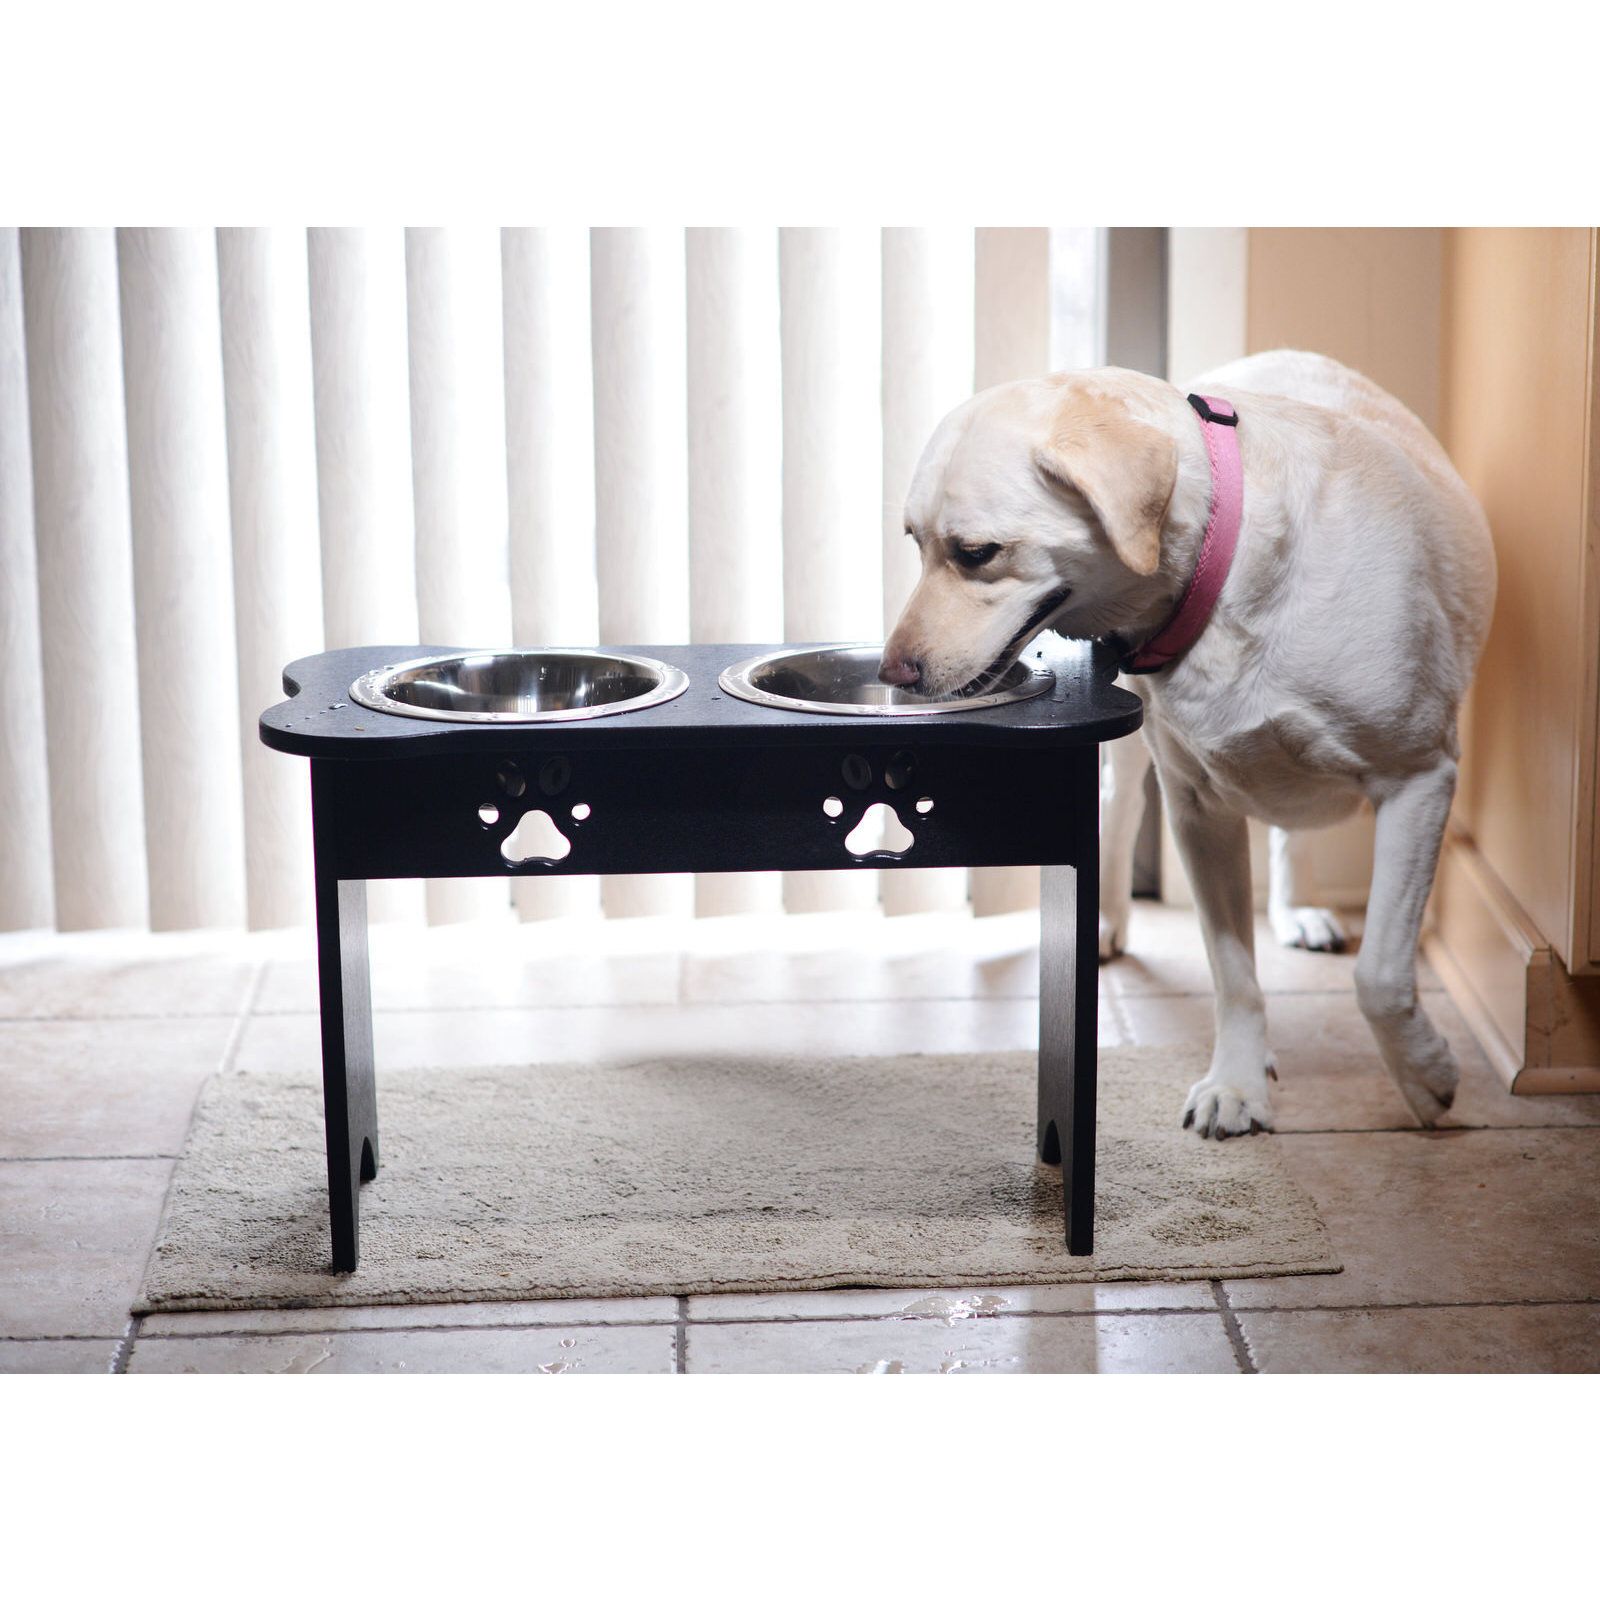 feeder product unleashed feeders raised over phuket life on overstock free supplies shipping pet orders